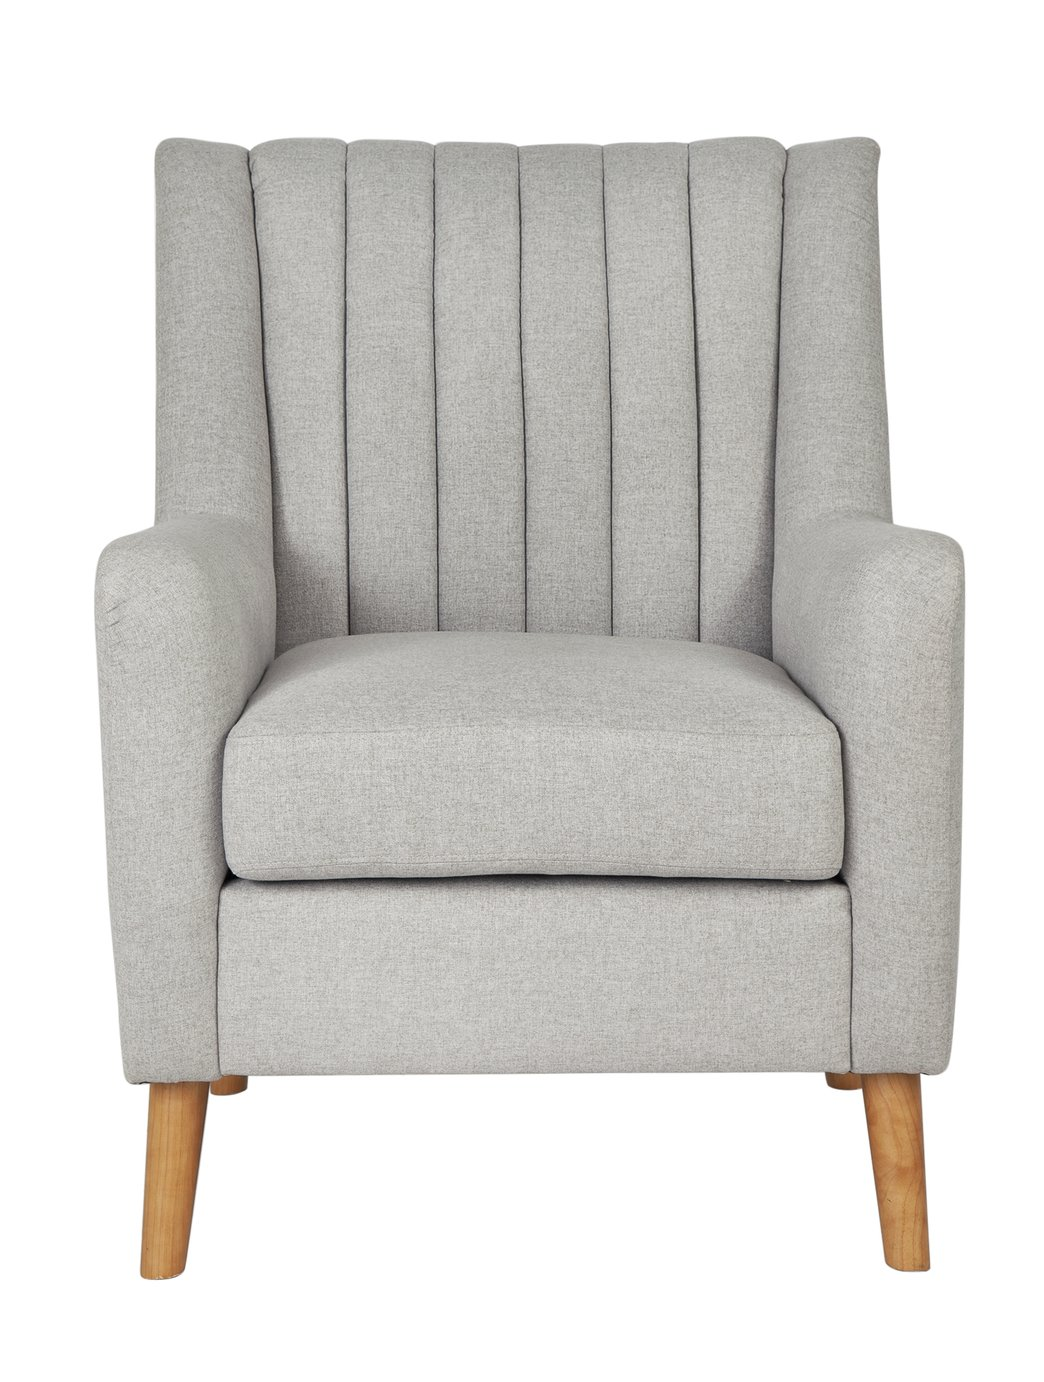 Argos Home Heidi Mid Century Fabric Armchair - Light Grey